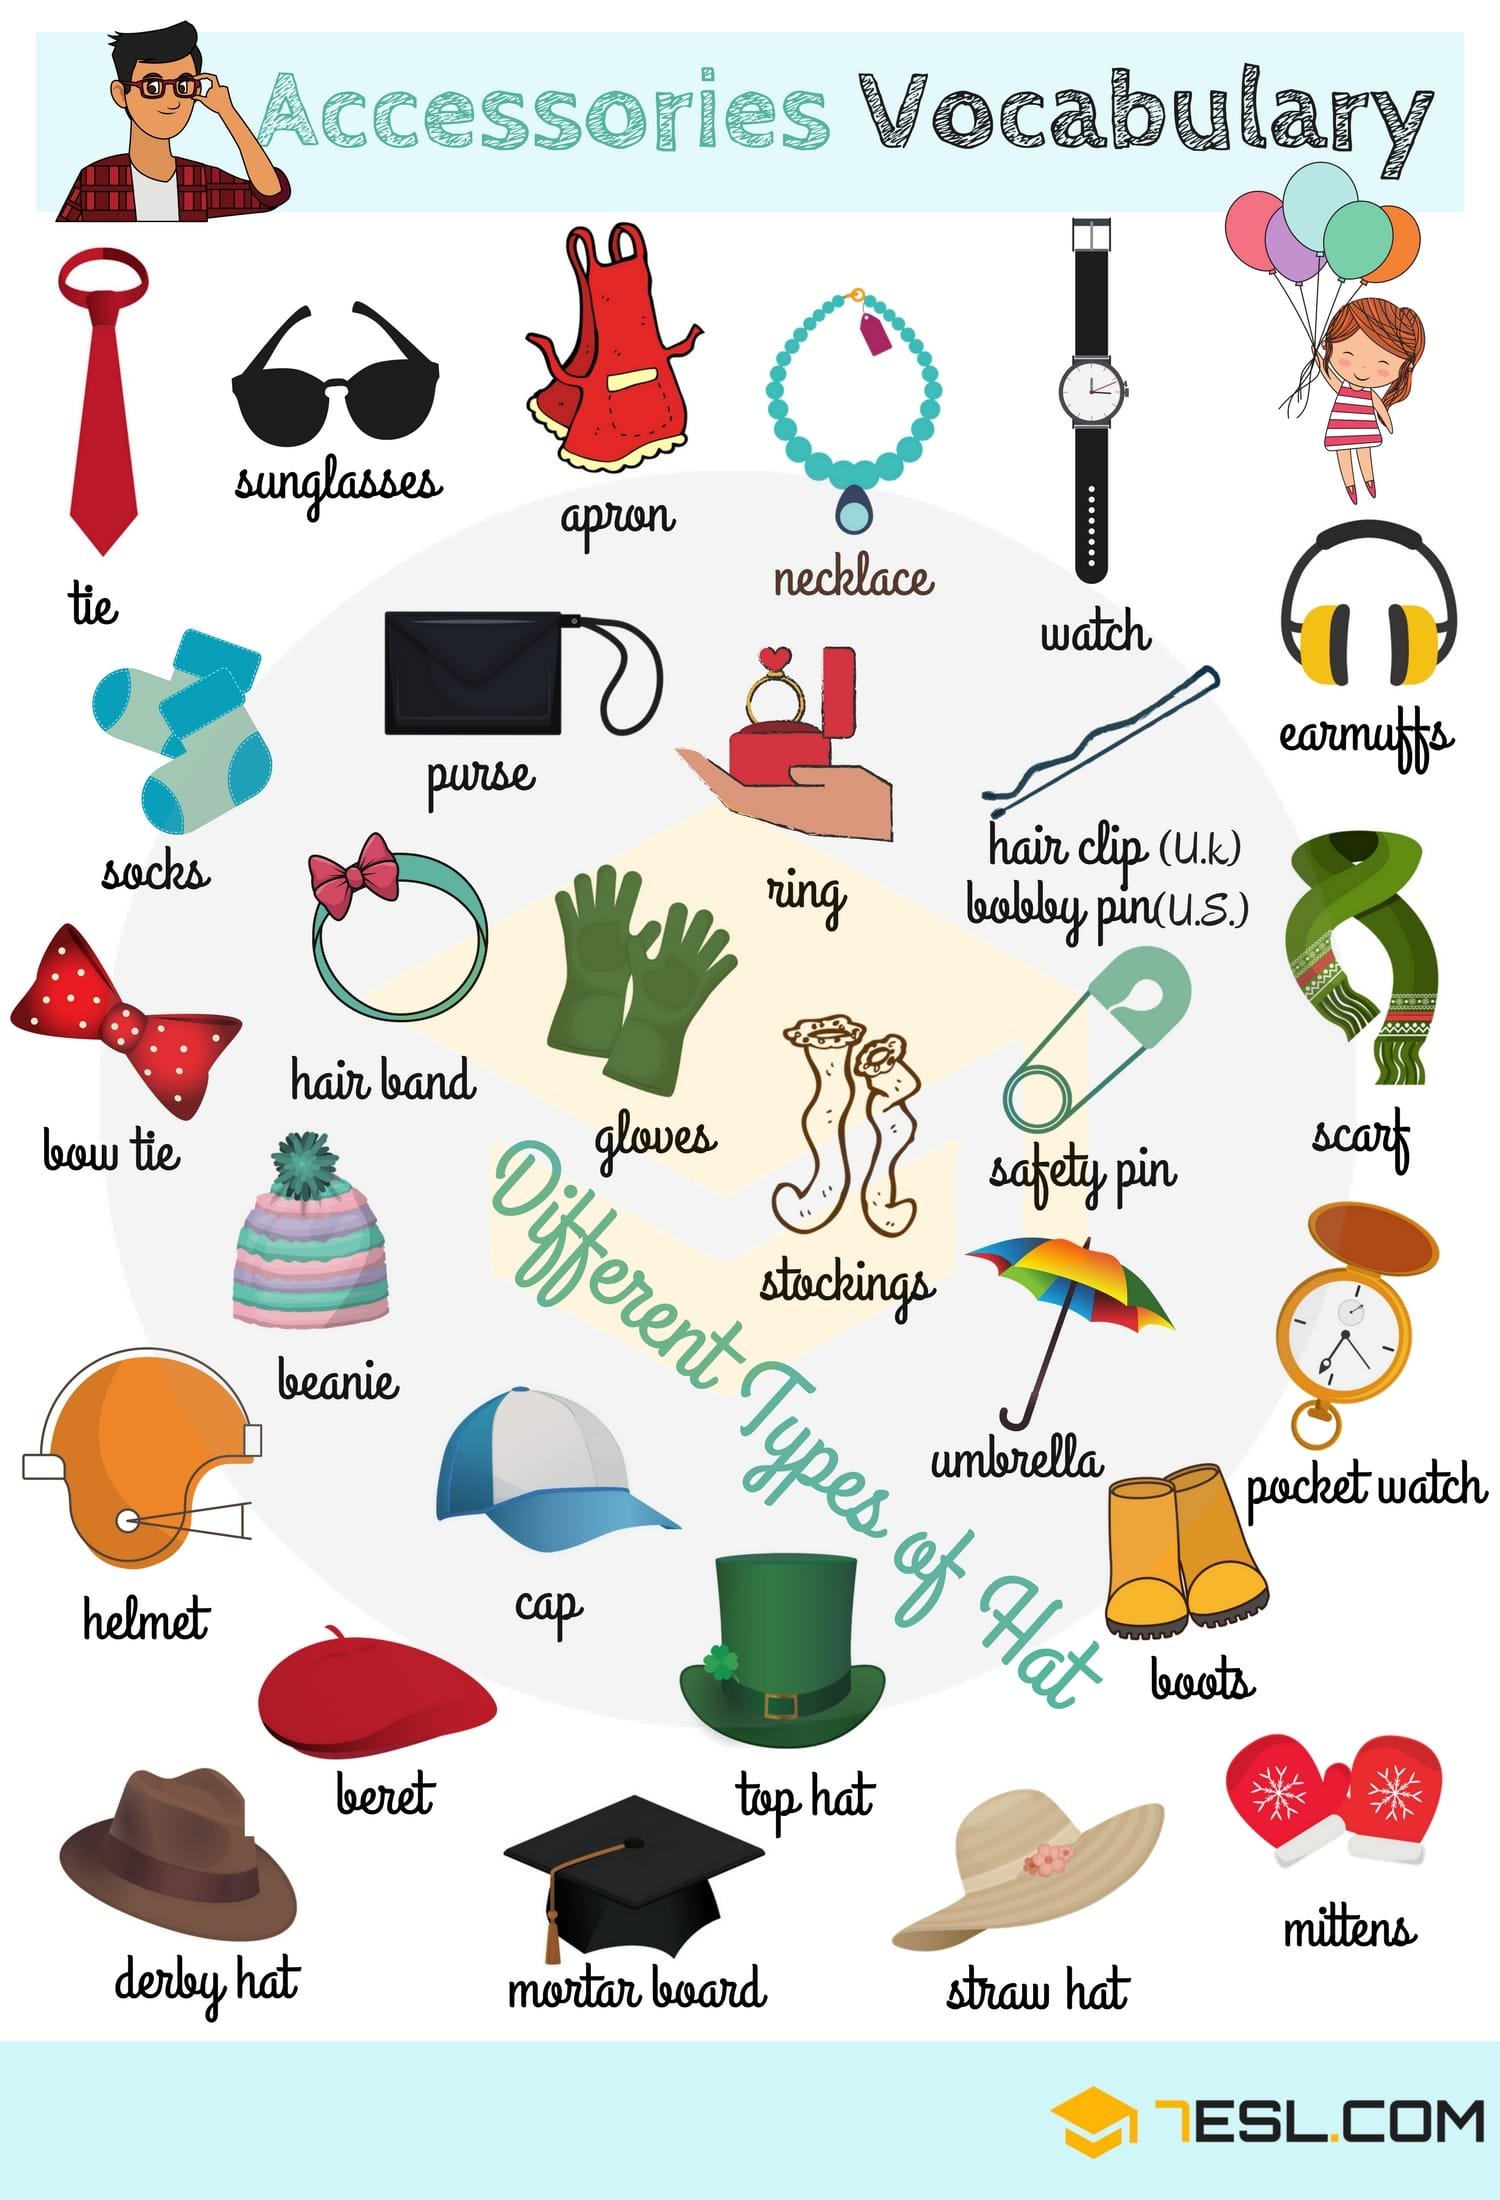 Learn Clothes and Accessories Vocabulary in English 7